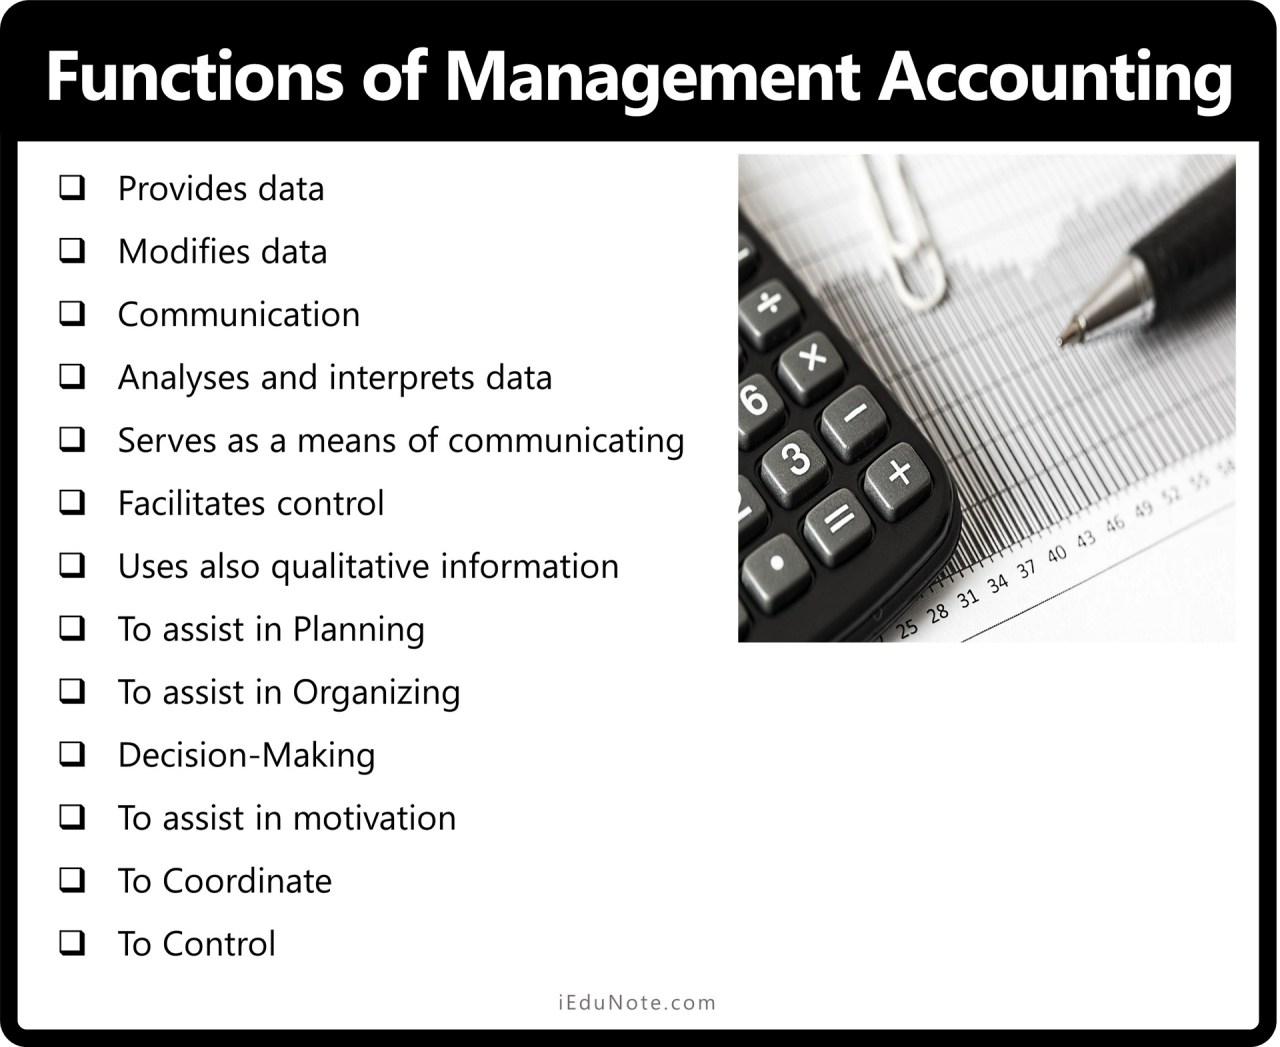 Functions of Management Accounting